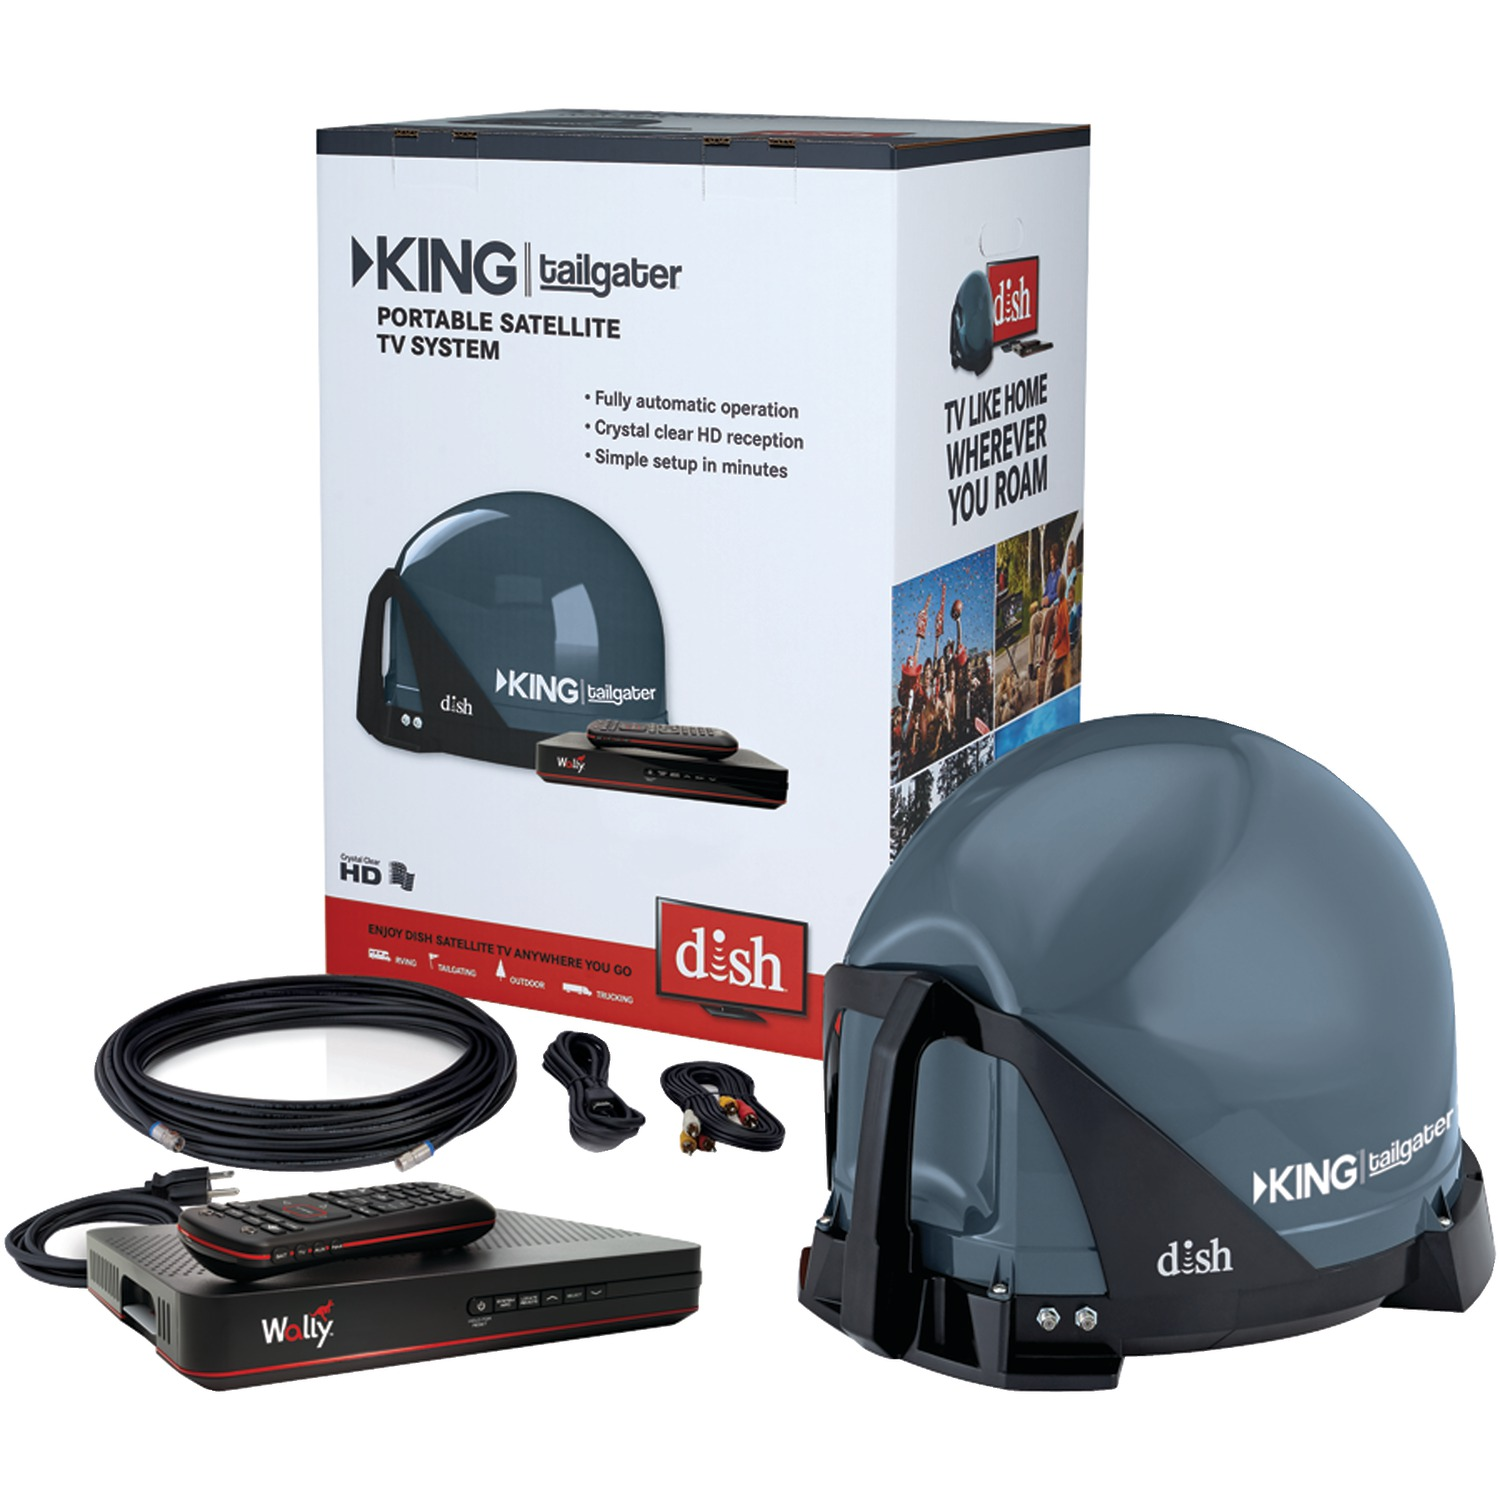 KING VQ4550 Tailgater Bundle with Carry Bag – Portable Satellite TV Antenna, DISH Wally HD Receiver & CB1000 Tailgater Padded Carry Bag for RVs, Trucks, Tailgating, Camping and Outdoor